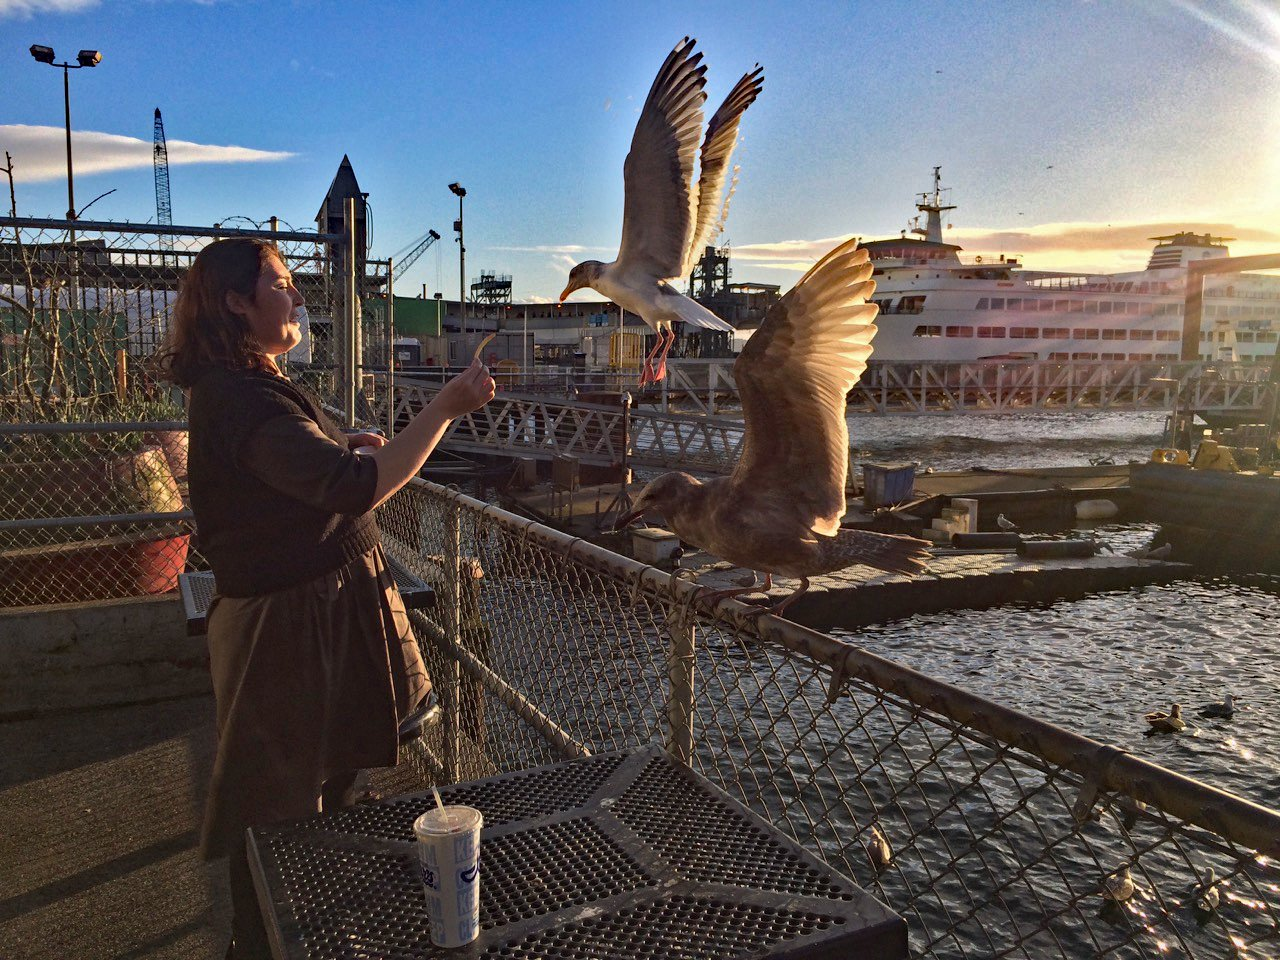 Nigora Umarova feeds the birds – usually forbidden on Seattle's waterfront, but this place is the exceptionSeattle, February 17, 2018